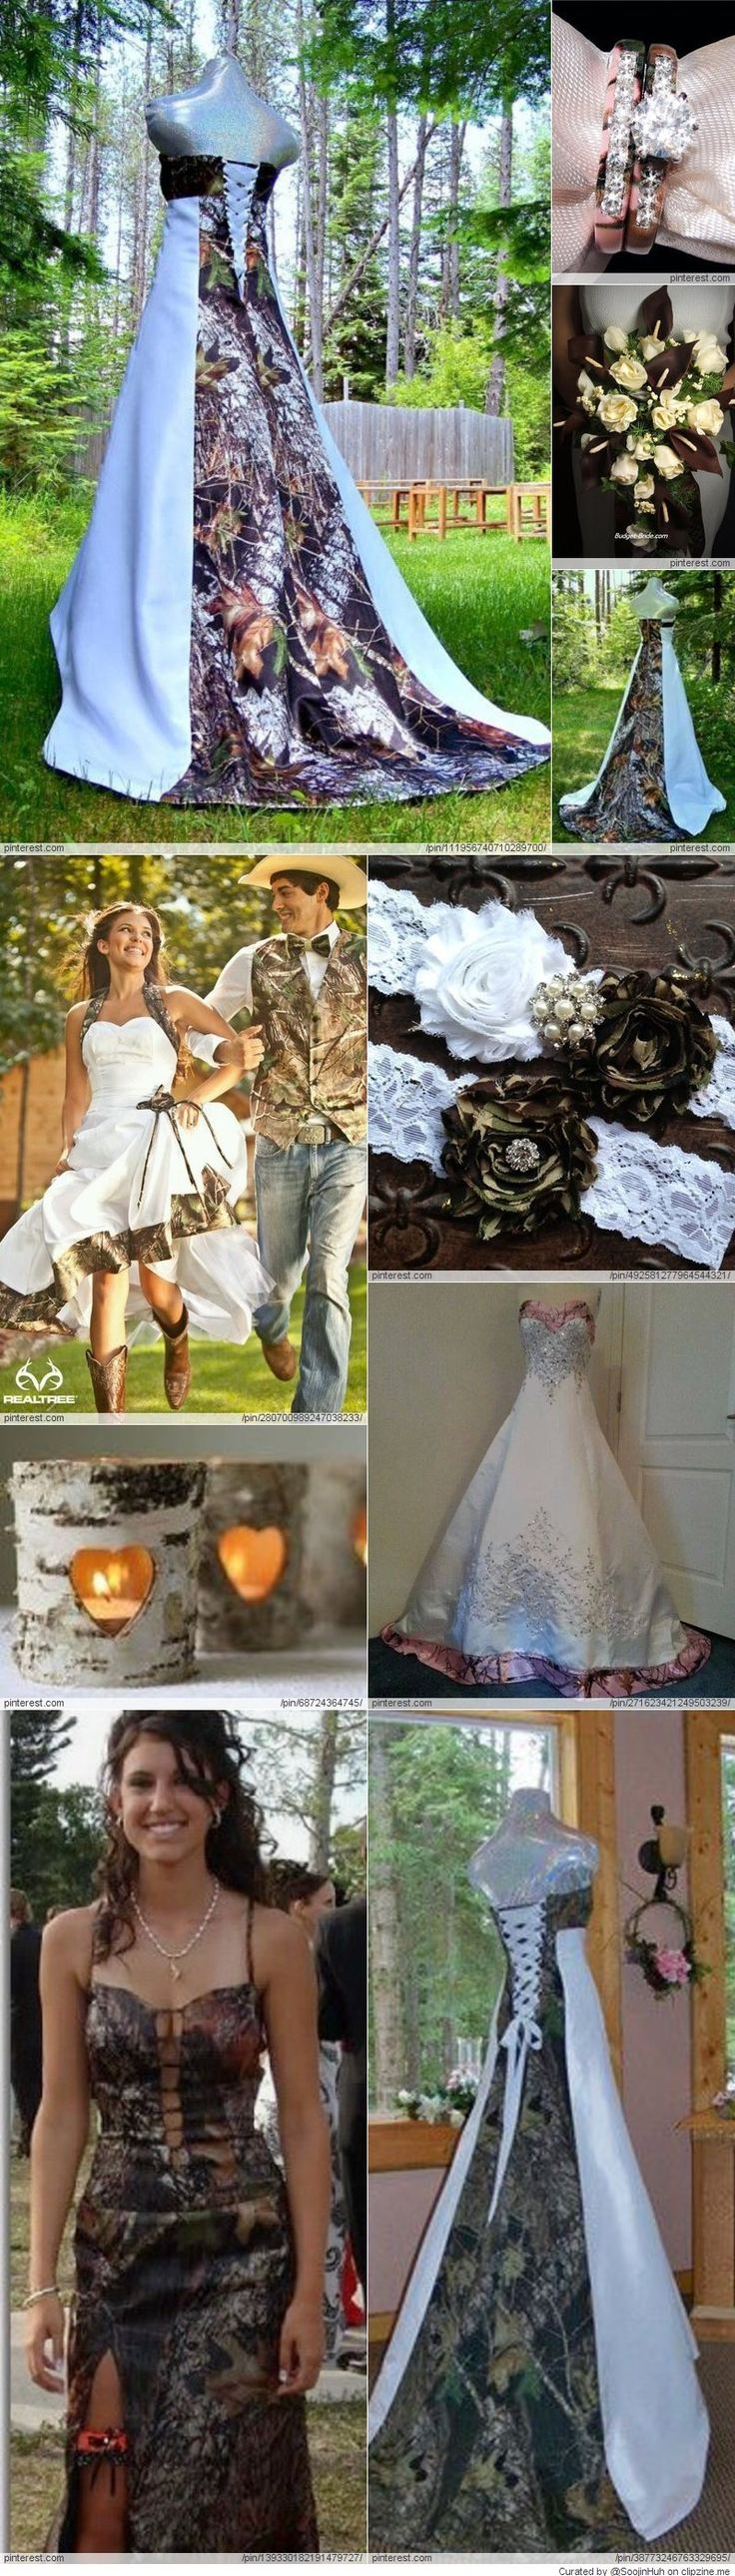 A very camo wedding! #camo #love #countrygirl For more Cute n' Country visit: www.cutencountry.com and www.facebook.com/cuteandcountry